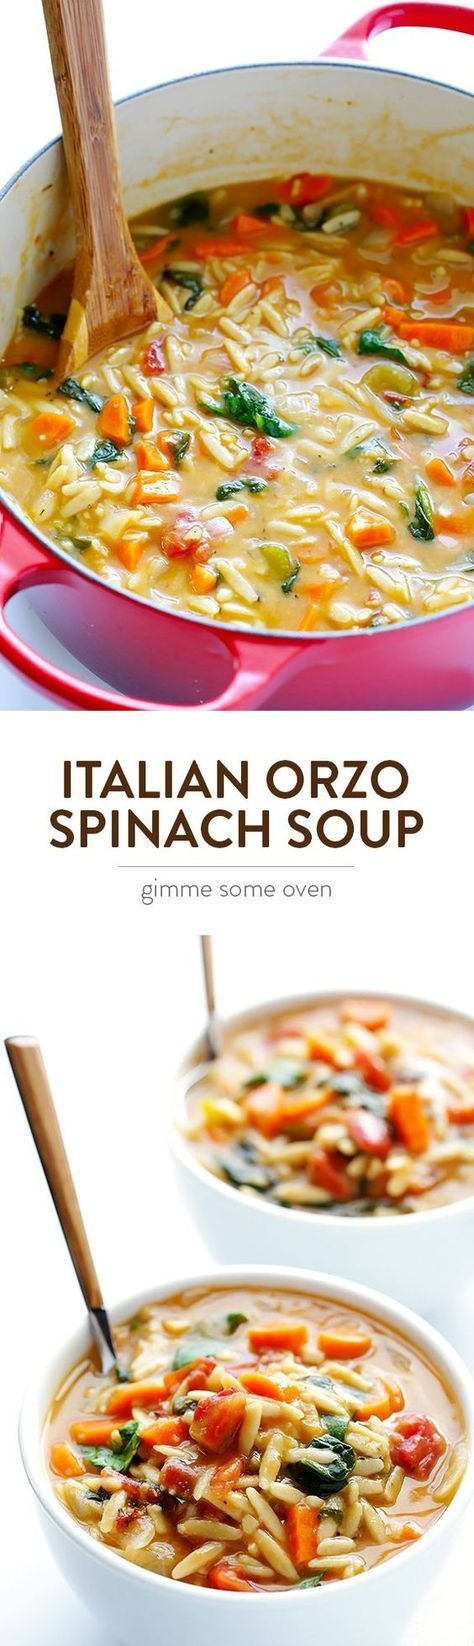 This Italian Orzo Spinach Soup is easy to make in 30 minutes, and it is wonderfully delicious and comforting.   gimmesomeoven.com #SuperSoups!